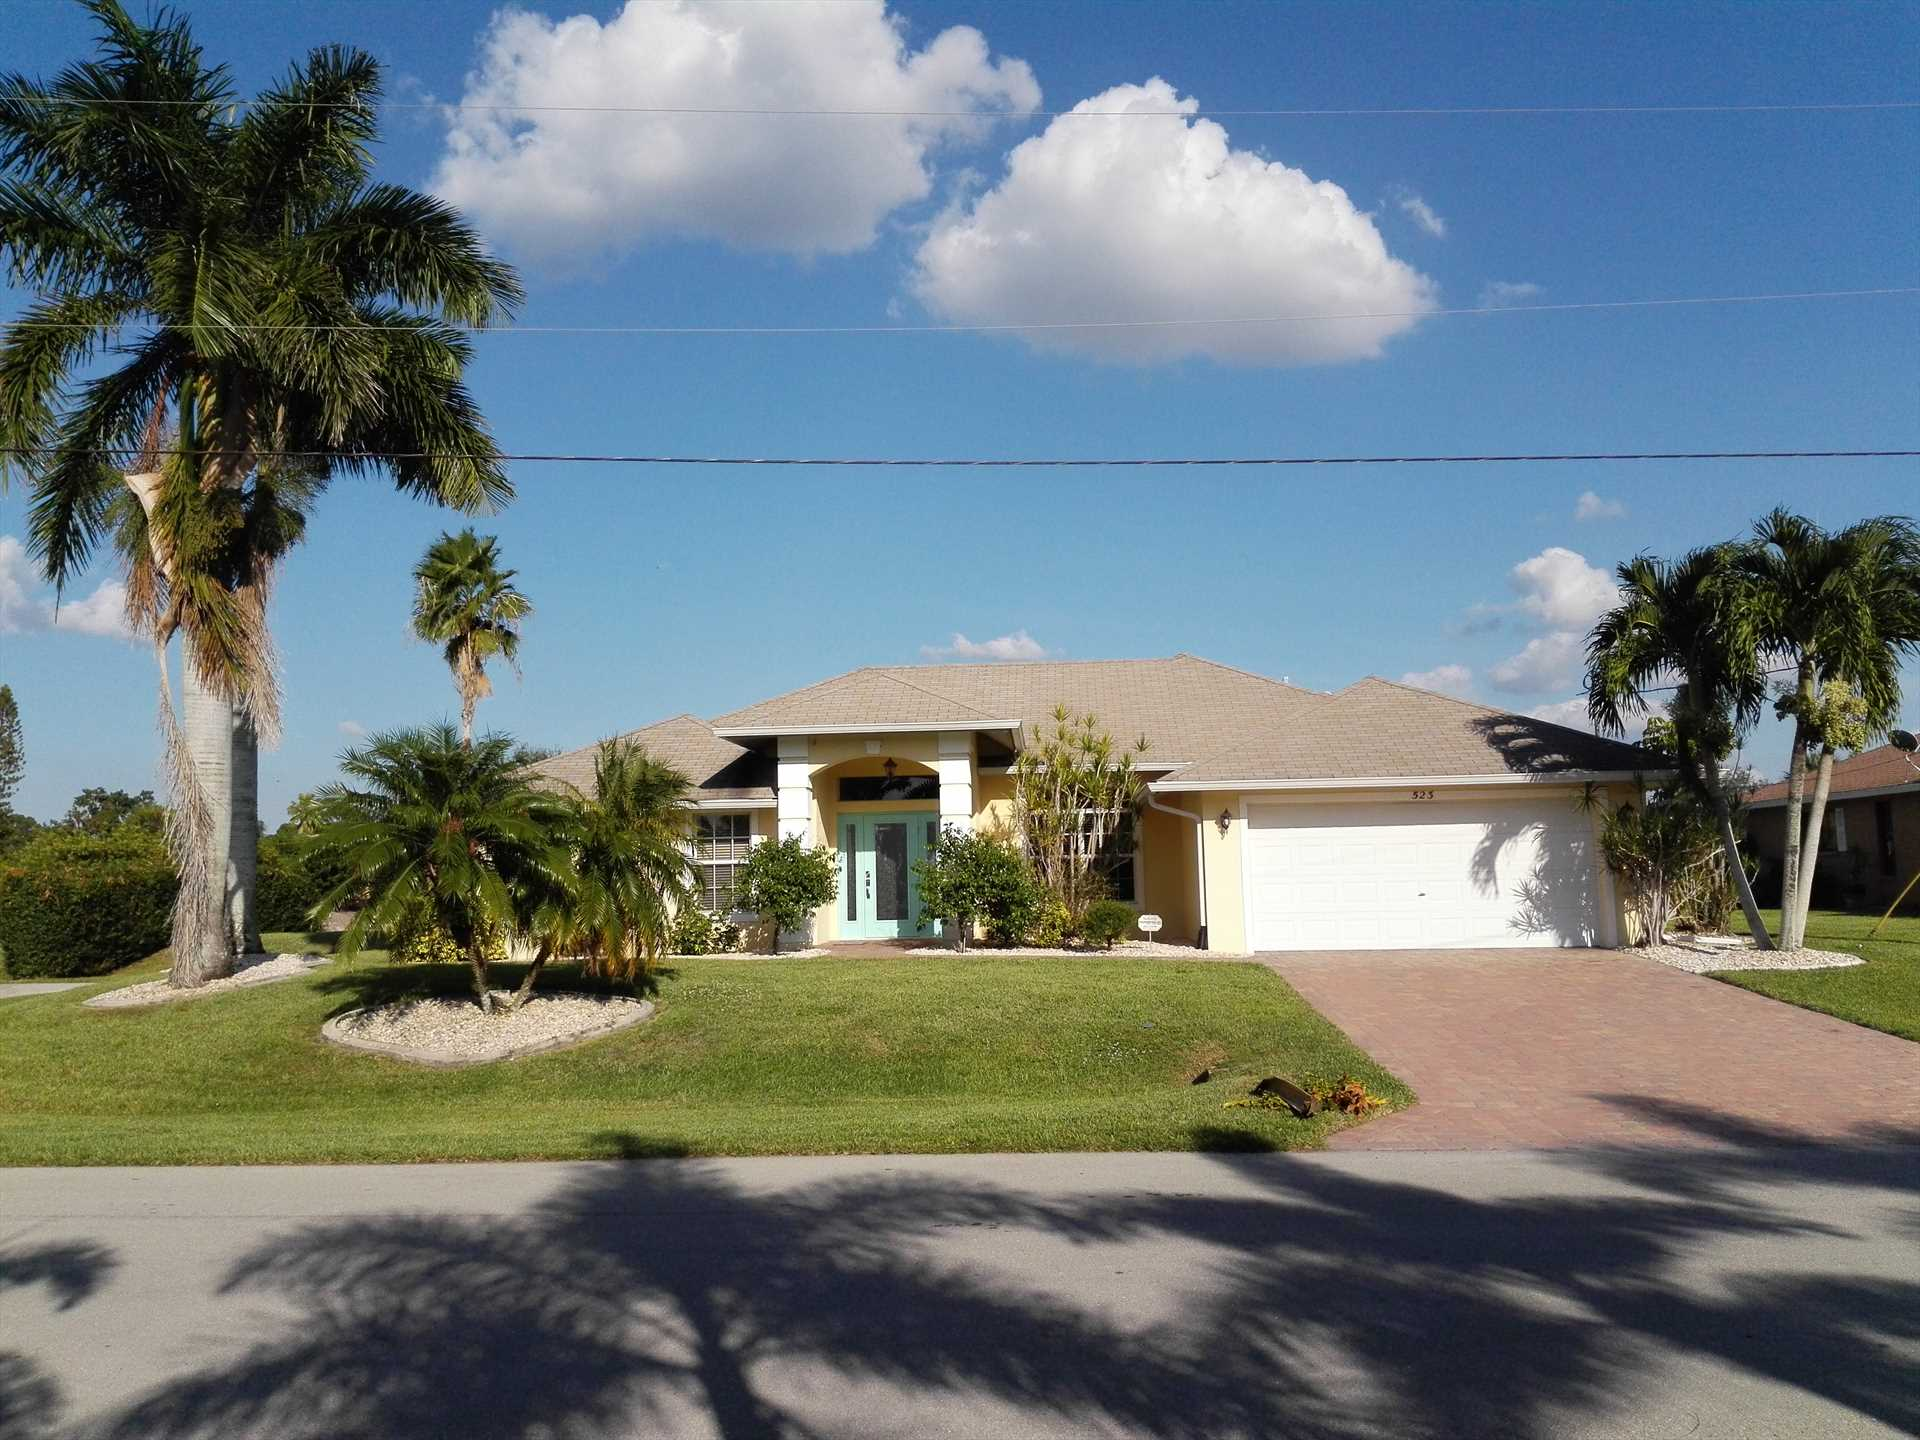 villa hannah vacation rental home in cape coral florida - Olive Garden Cape Coral